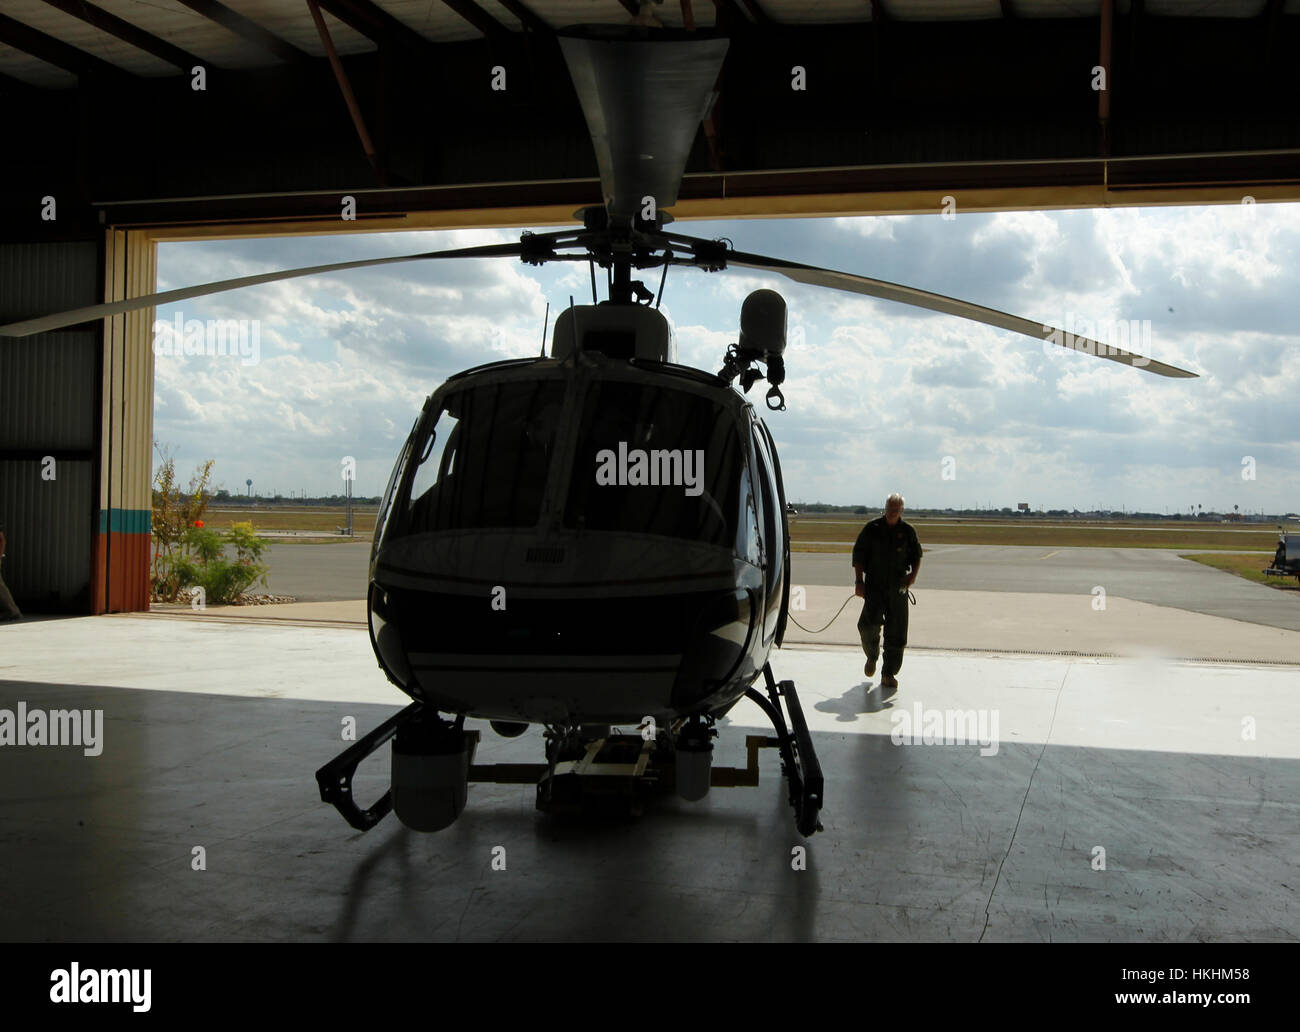 10/13/11 -  Texas Department of Public Safety pilot Lt. Johhny Prince II rolls the helicopter into the hangar after Stock Photo